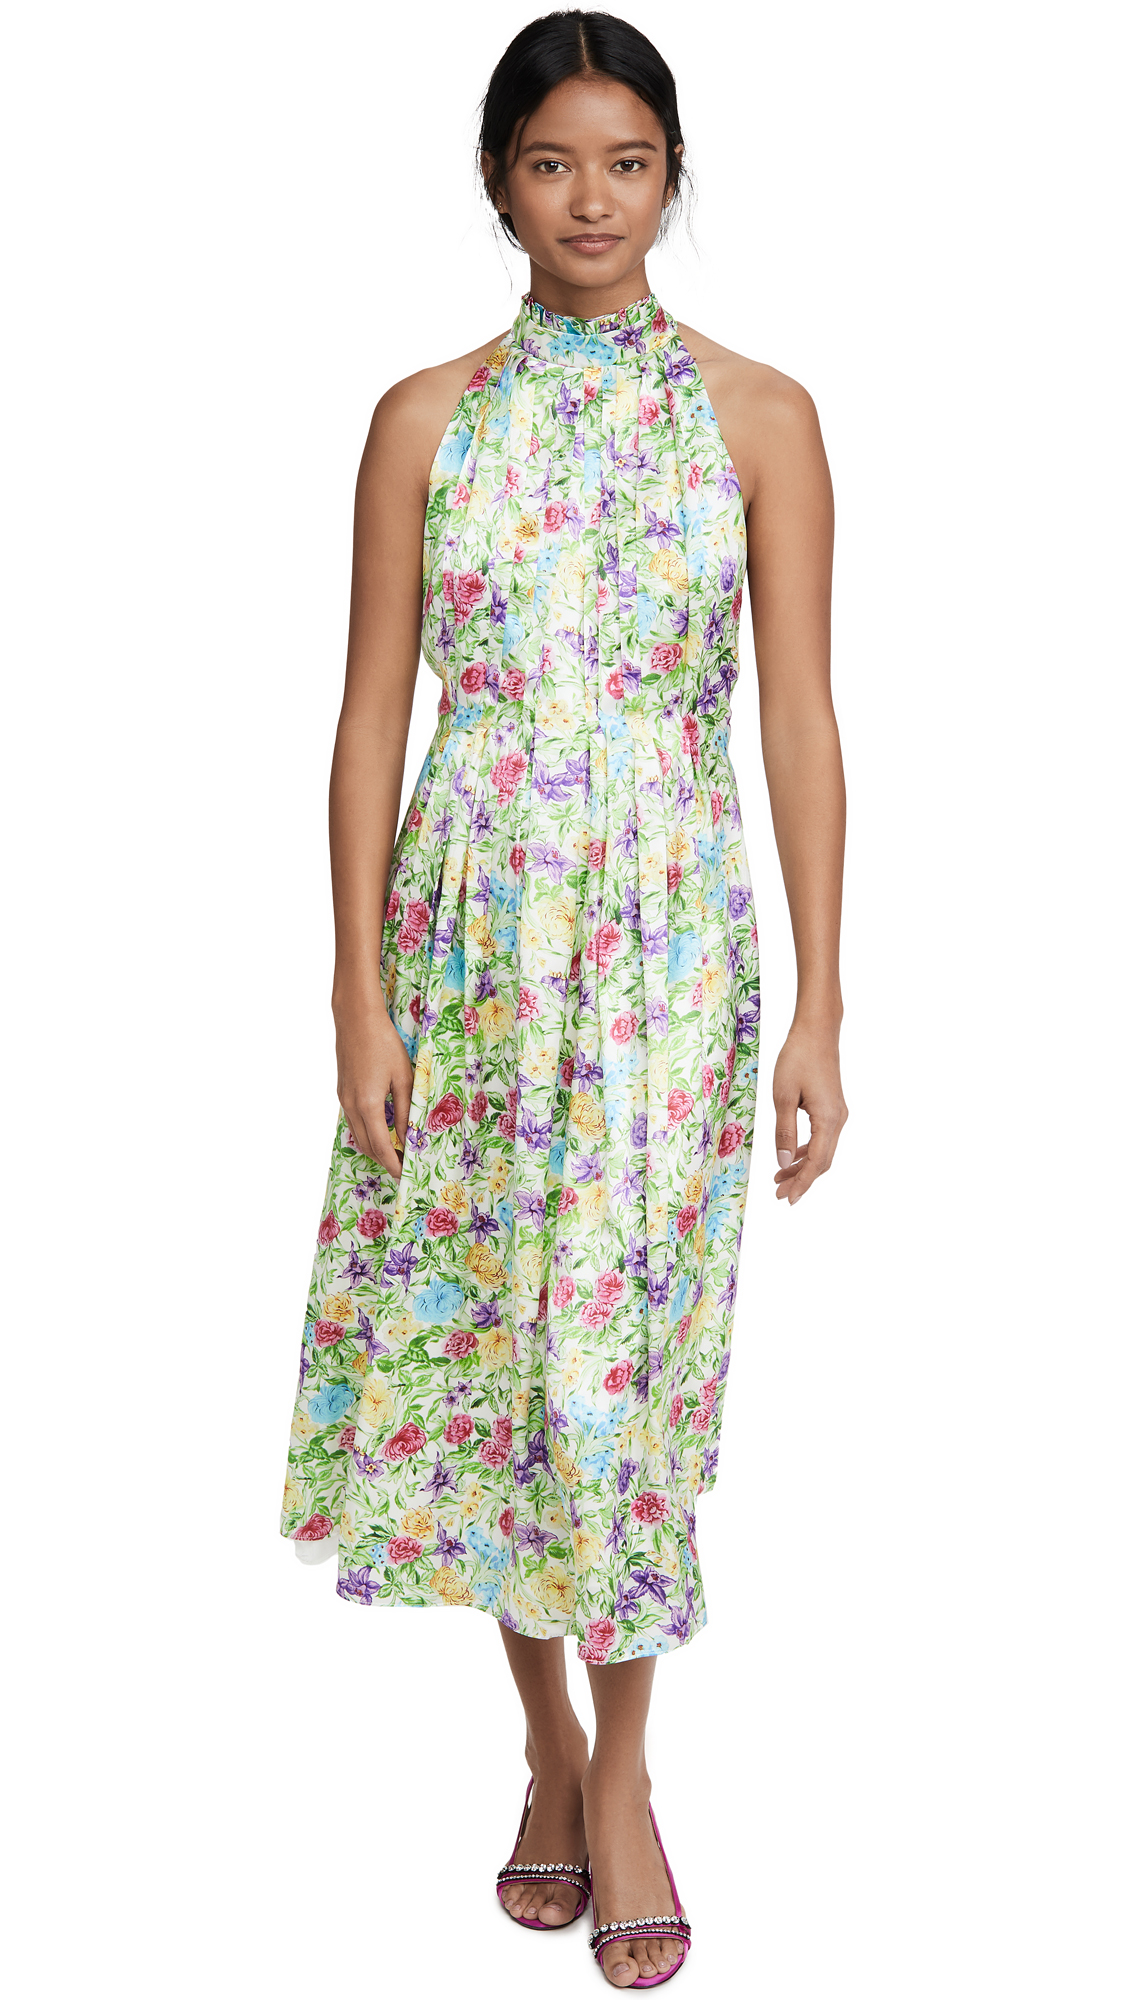 LES REVERIES Pleated Pussy Bow Maxi Dress - 70% Off Sale